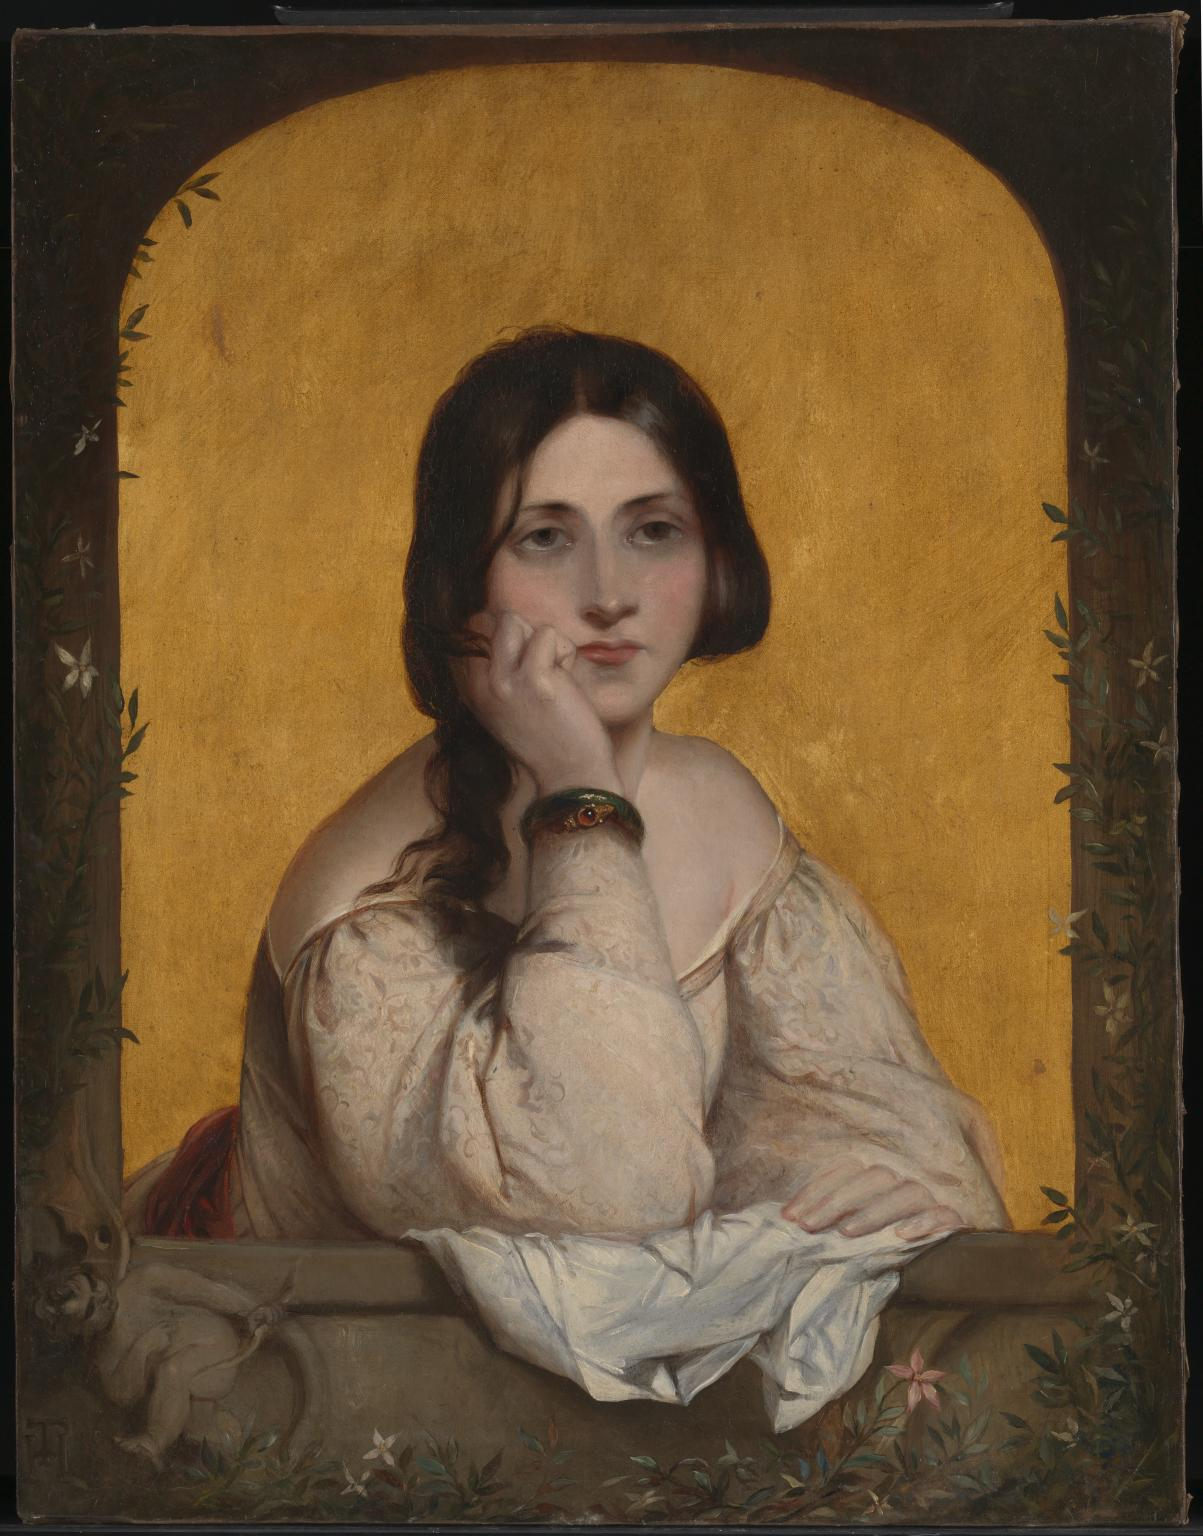 Theodor von Holst, The Bride, 1842. Presented by Tate Members 2015 © Tate